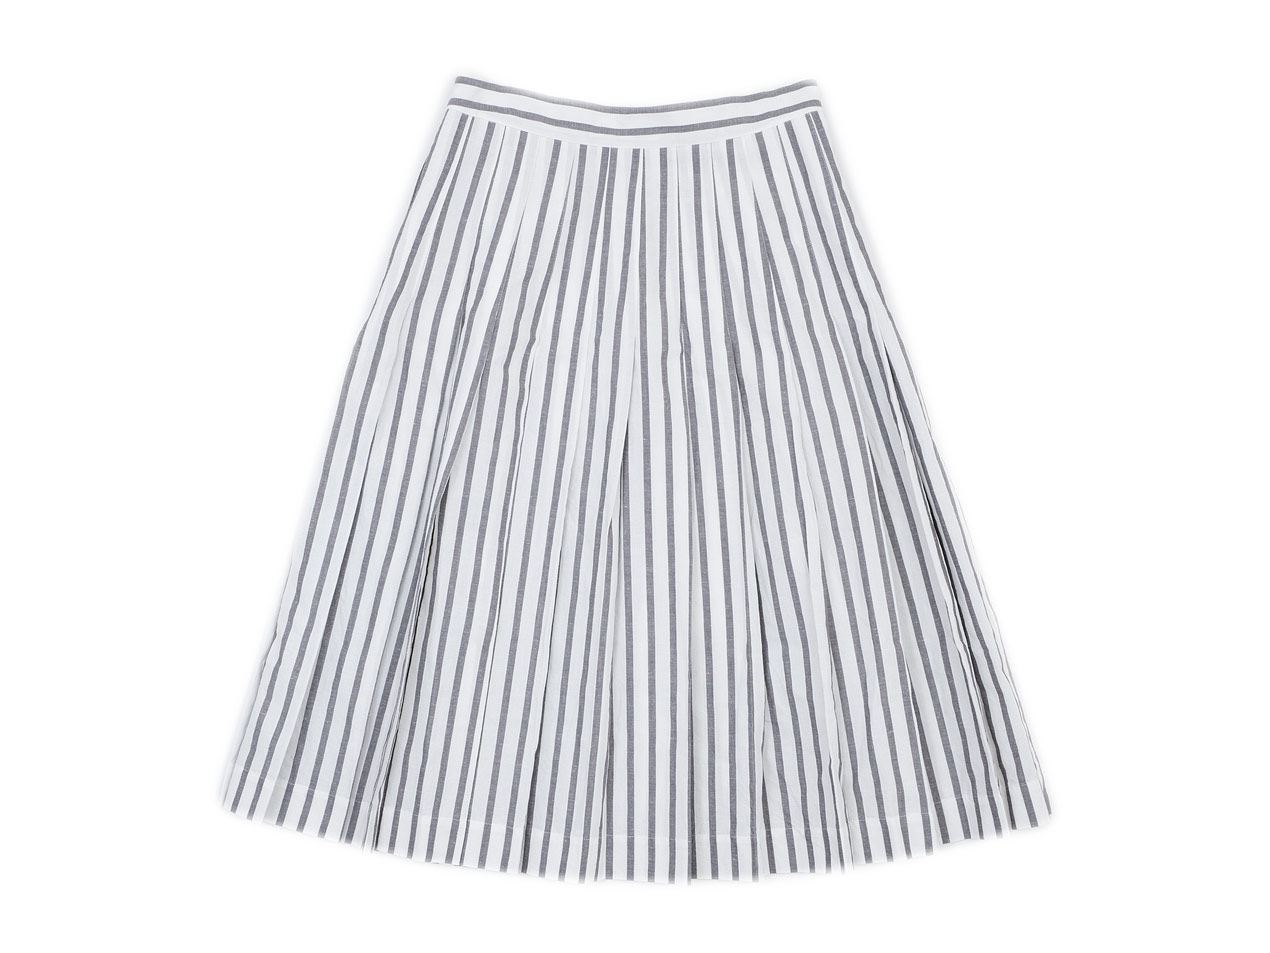 MARGARET HOWELL BOLD STRIPE COTTON LINEN SKIRT